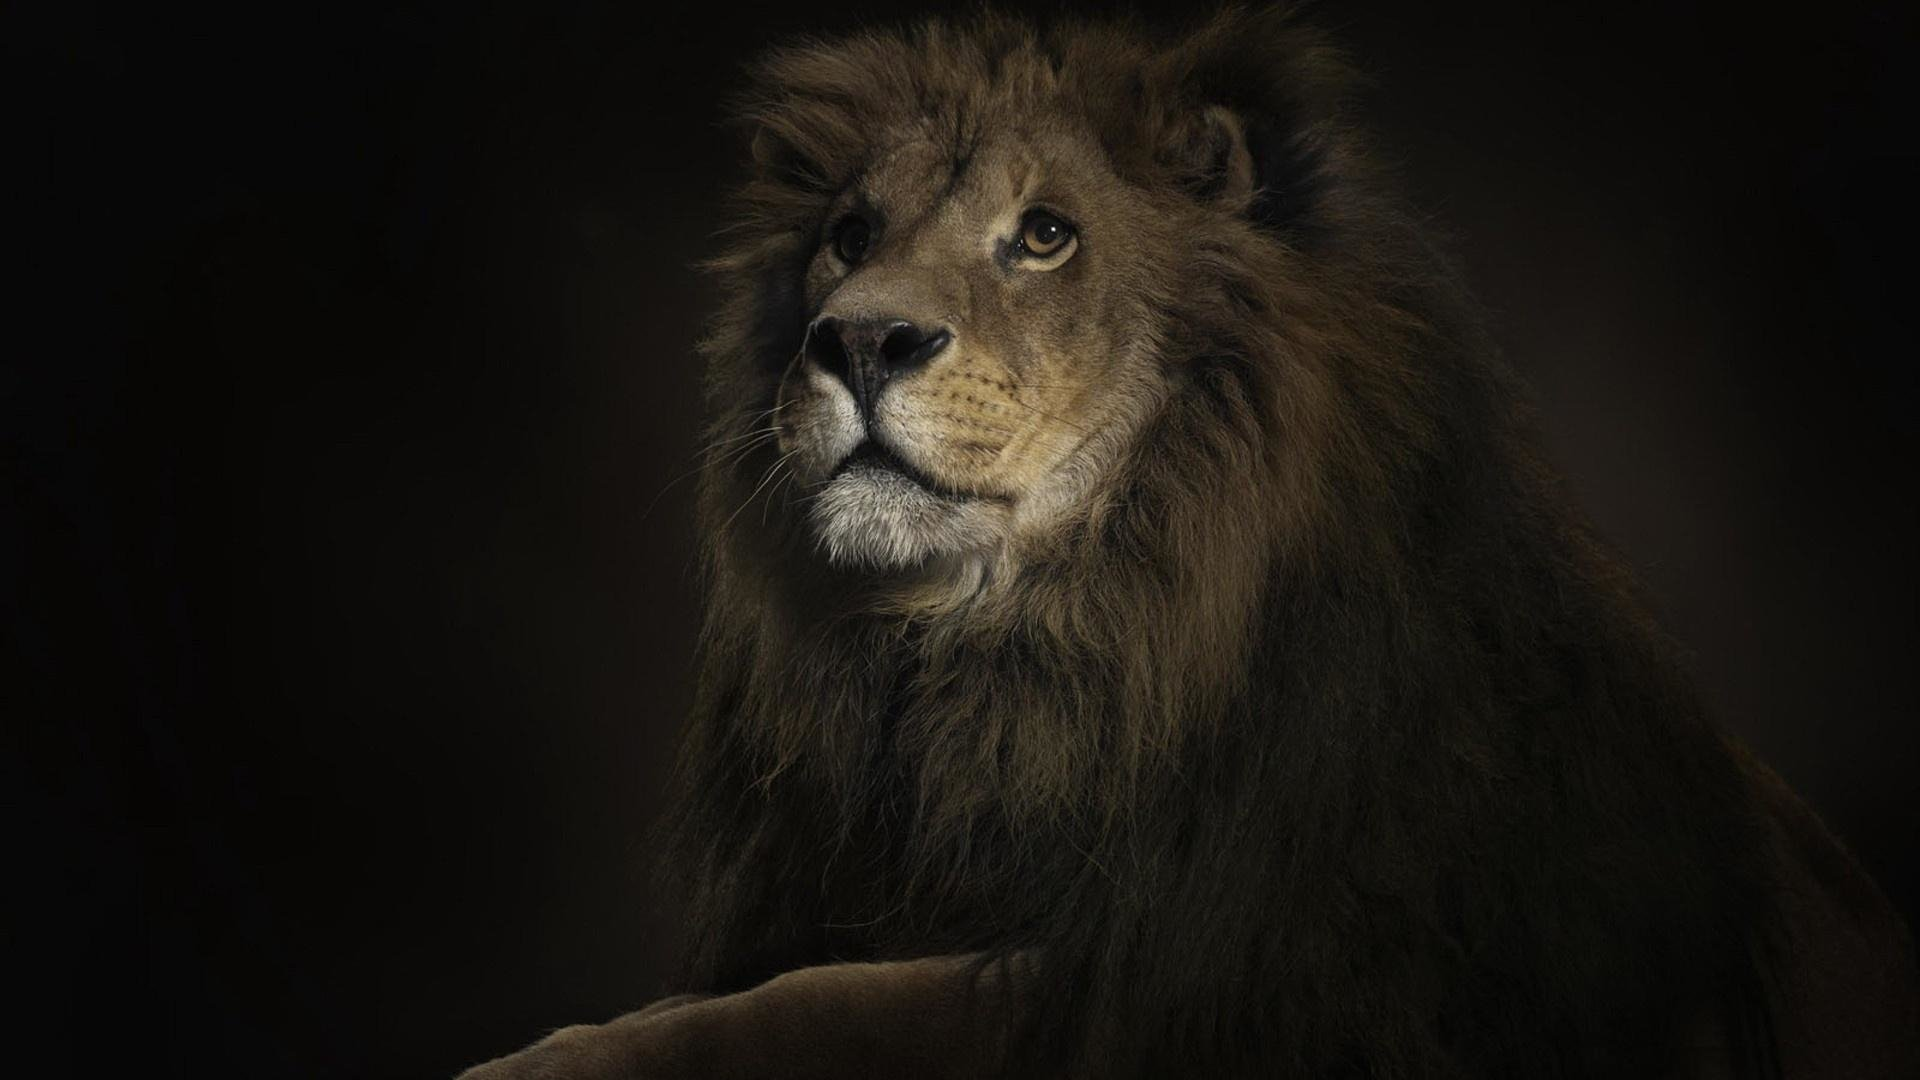 1160 Lion Hd Wallpapers Background Images Wallpaper Abyss